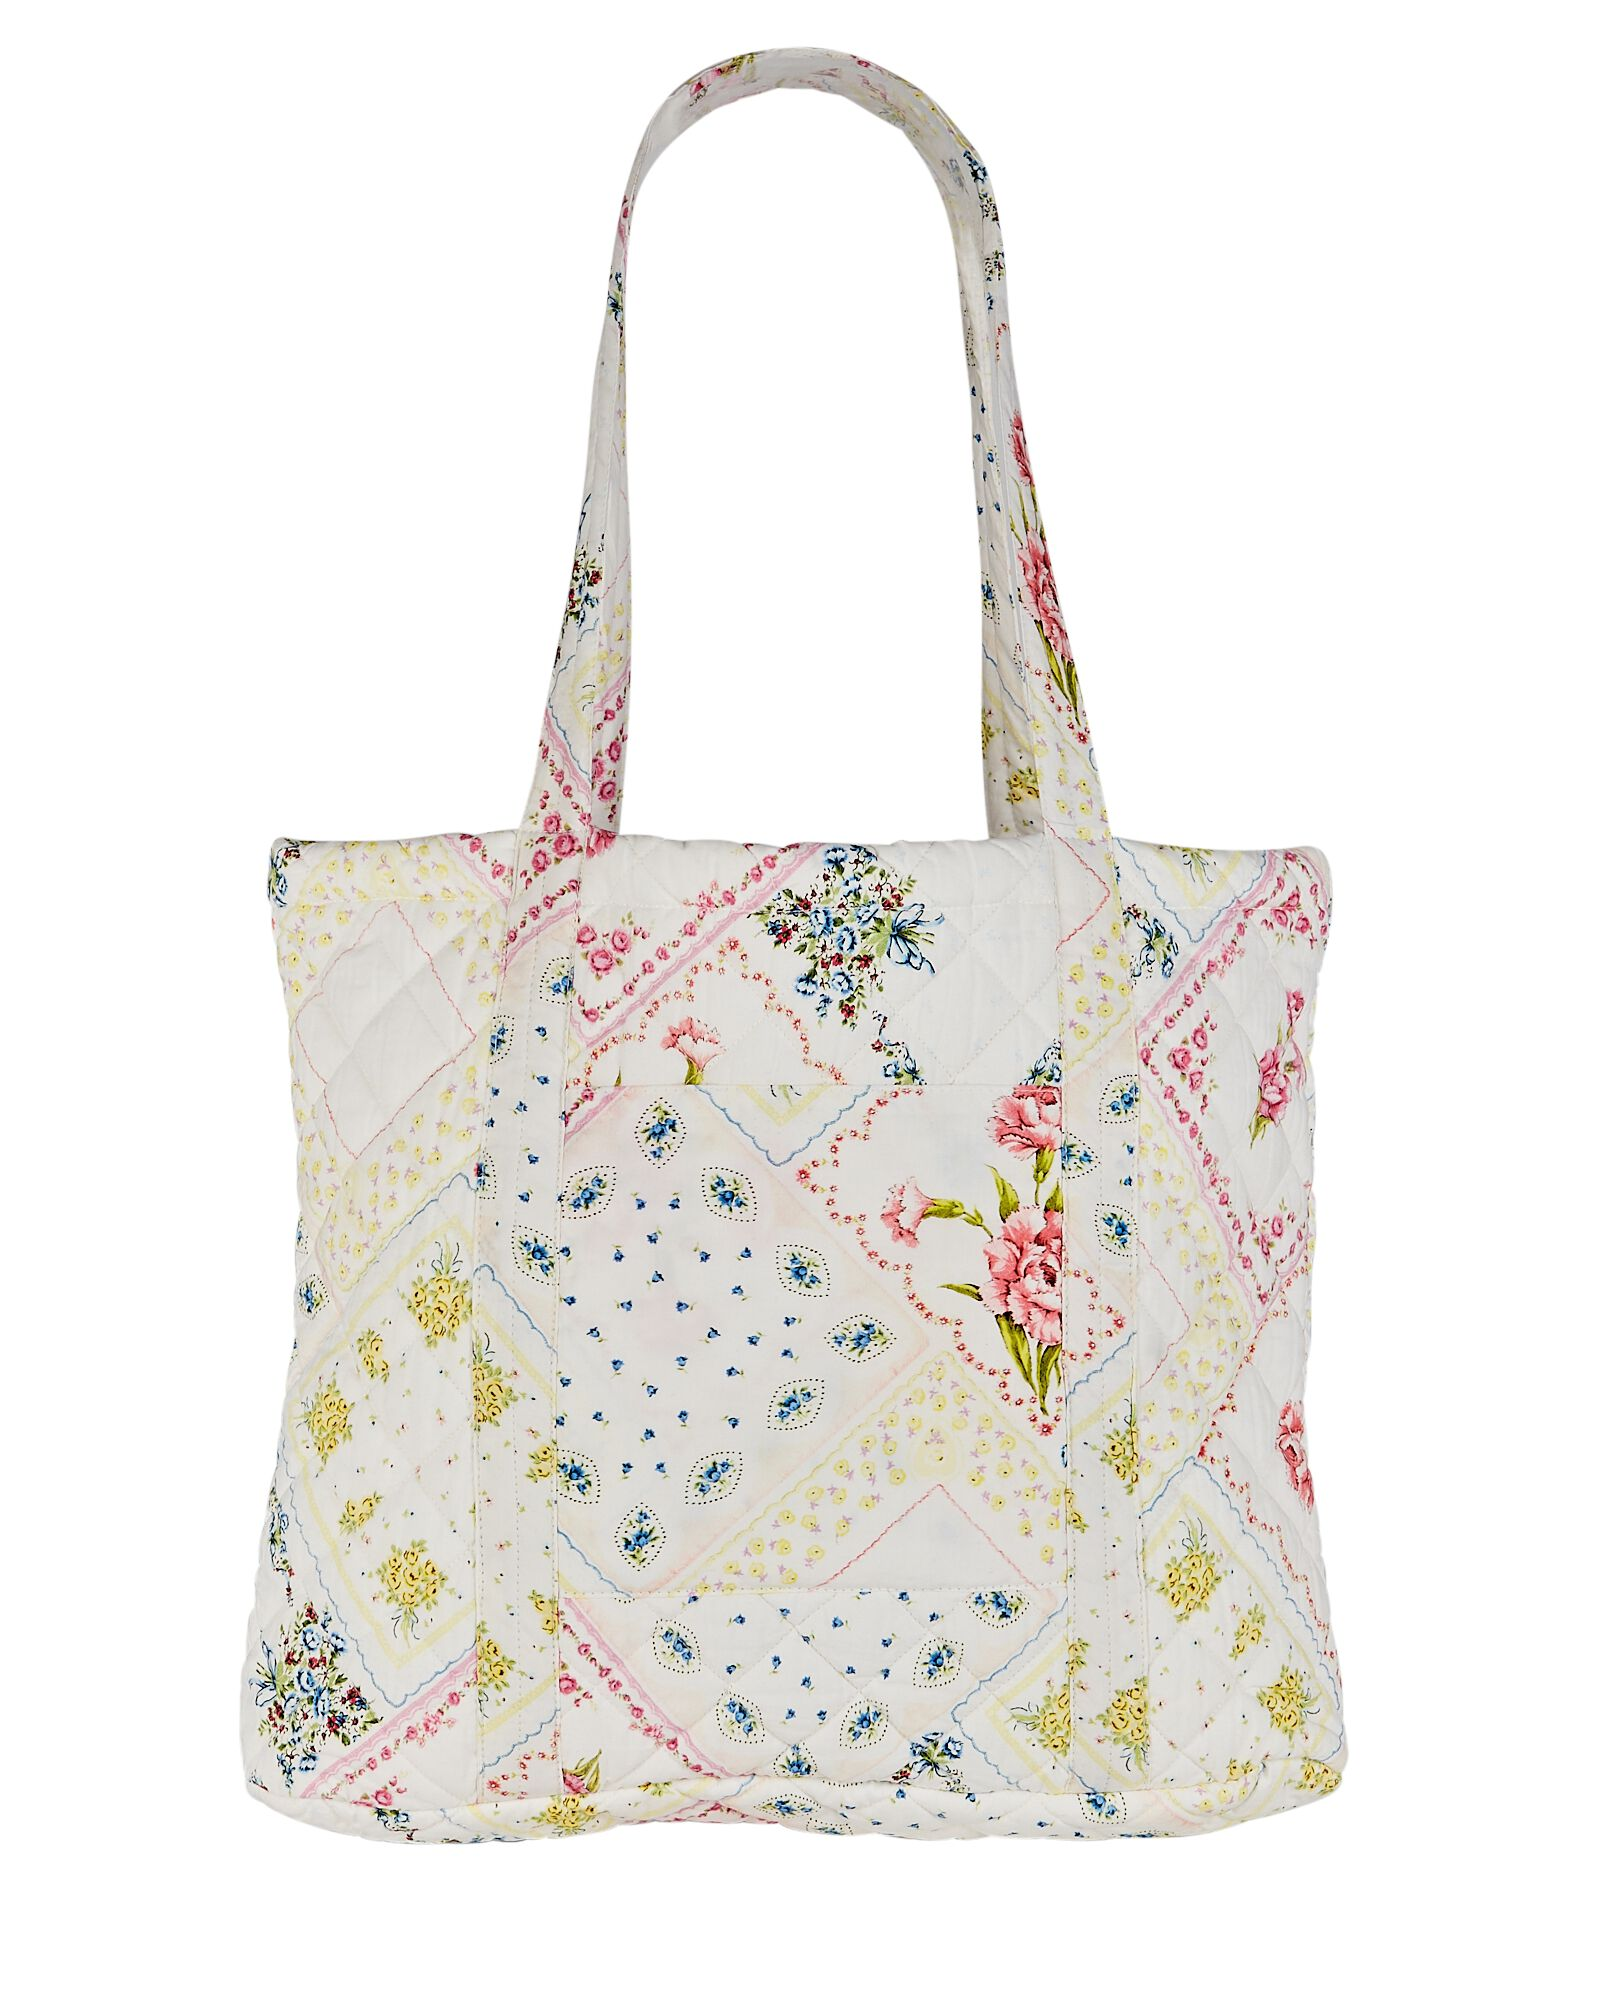 Henderson Quilted Floral Cotton Tote, IVORY, hi-res